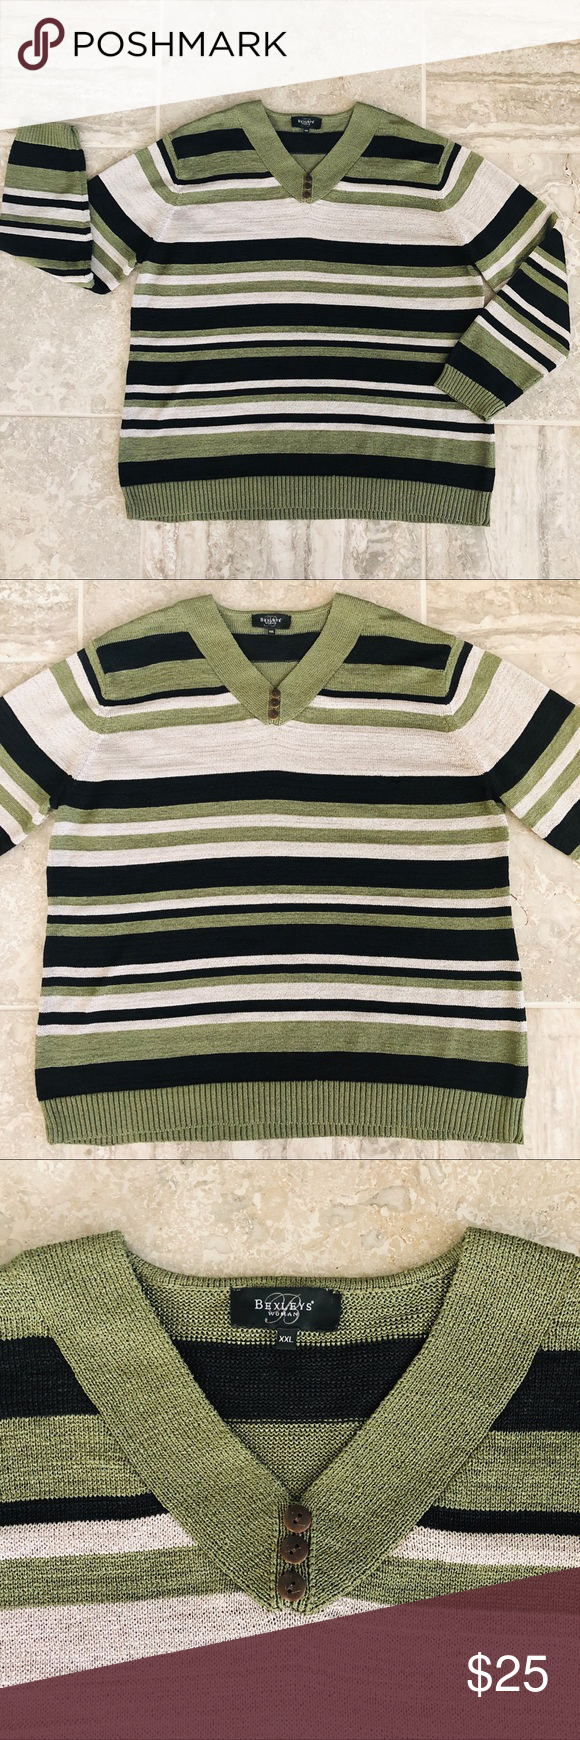 """🪁BEXLEYS GREEN MUL STRIPED SWEATER PLUS SIZE XXL This sweater from BEXLEYS features a v-neck with buttons, long sleeves, and looks like new.  Shoulder to hem approx 28"""" Sleeve length approx 23.5""""  MSRP €50 approx $56.00  📦 #010 BEXLEYS WOMAN Sweaters V-Necks"""